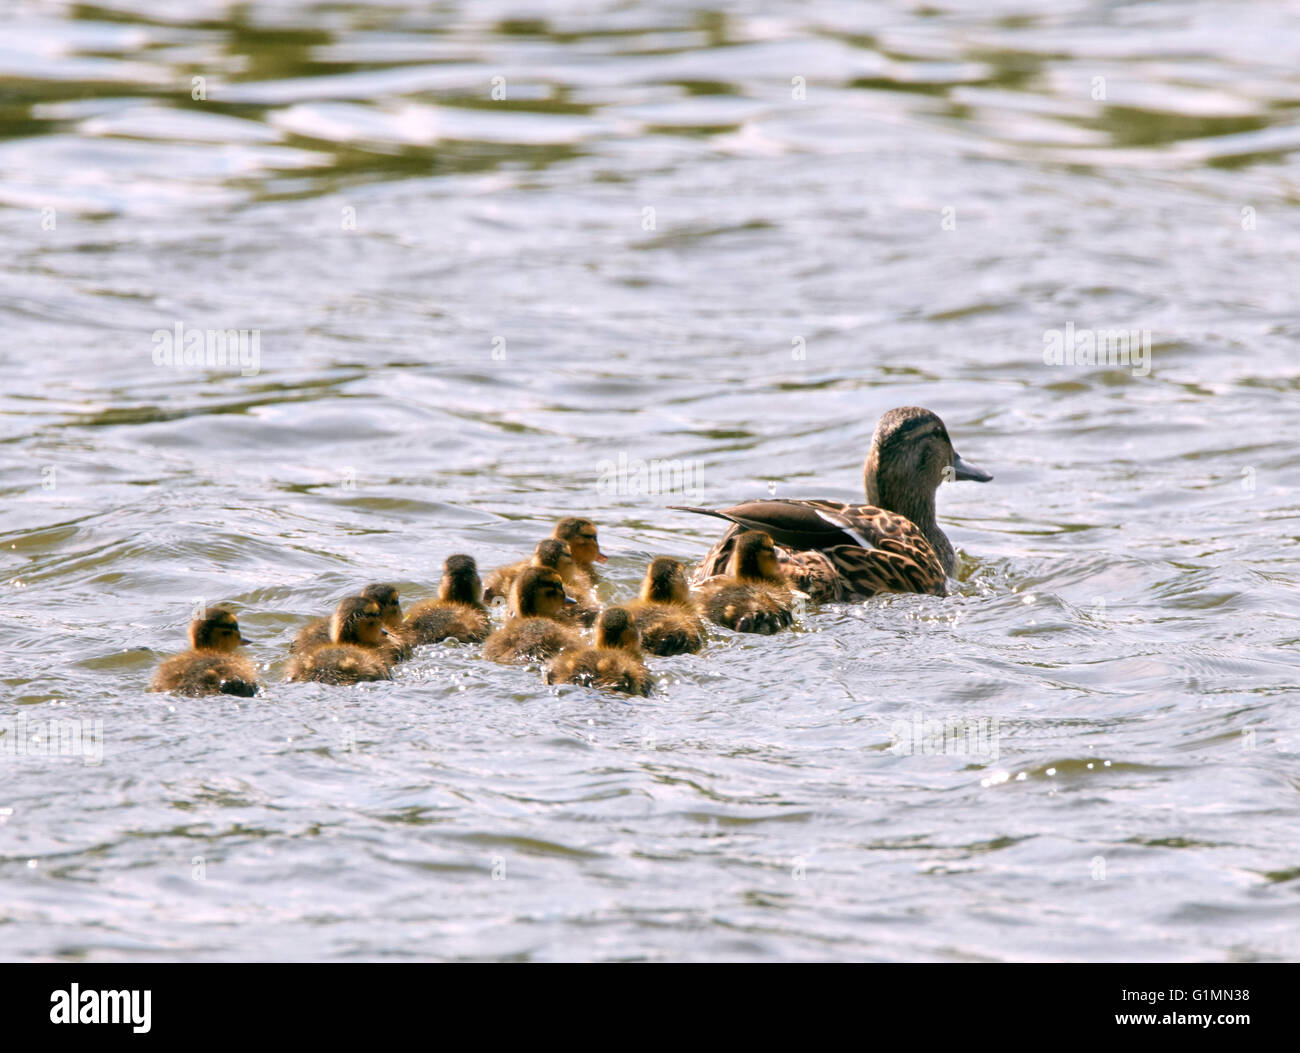 Mallard duck with ten ducklings.  River Thames, West Molesey, Surrey, England. - Stock Image